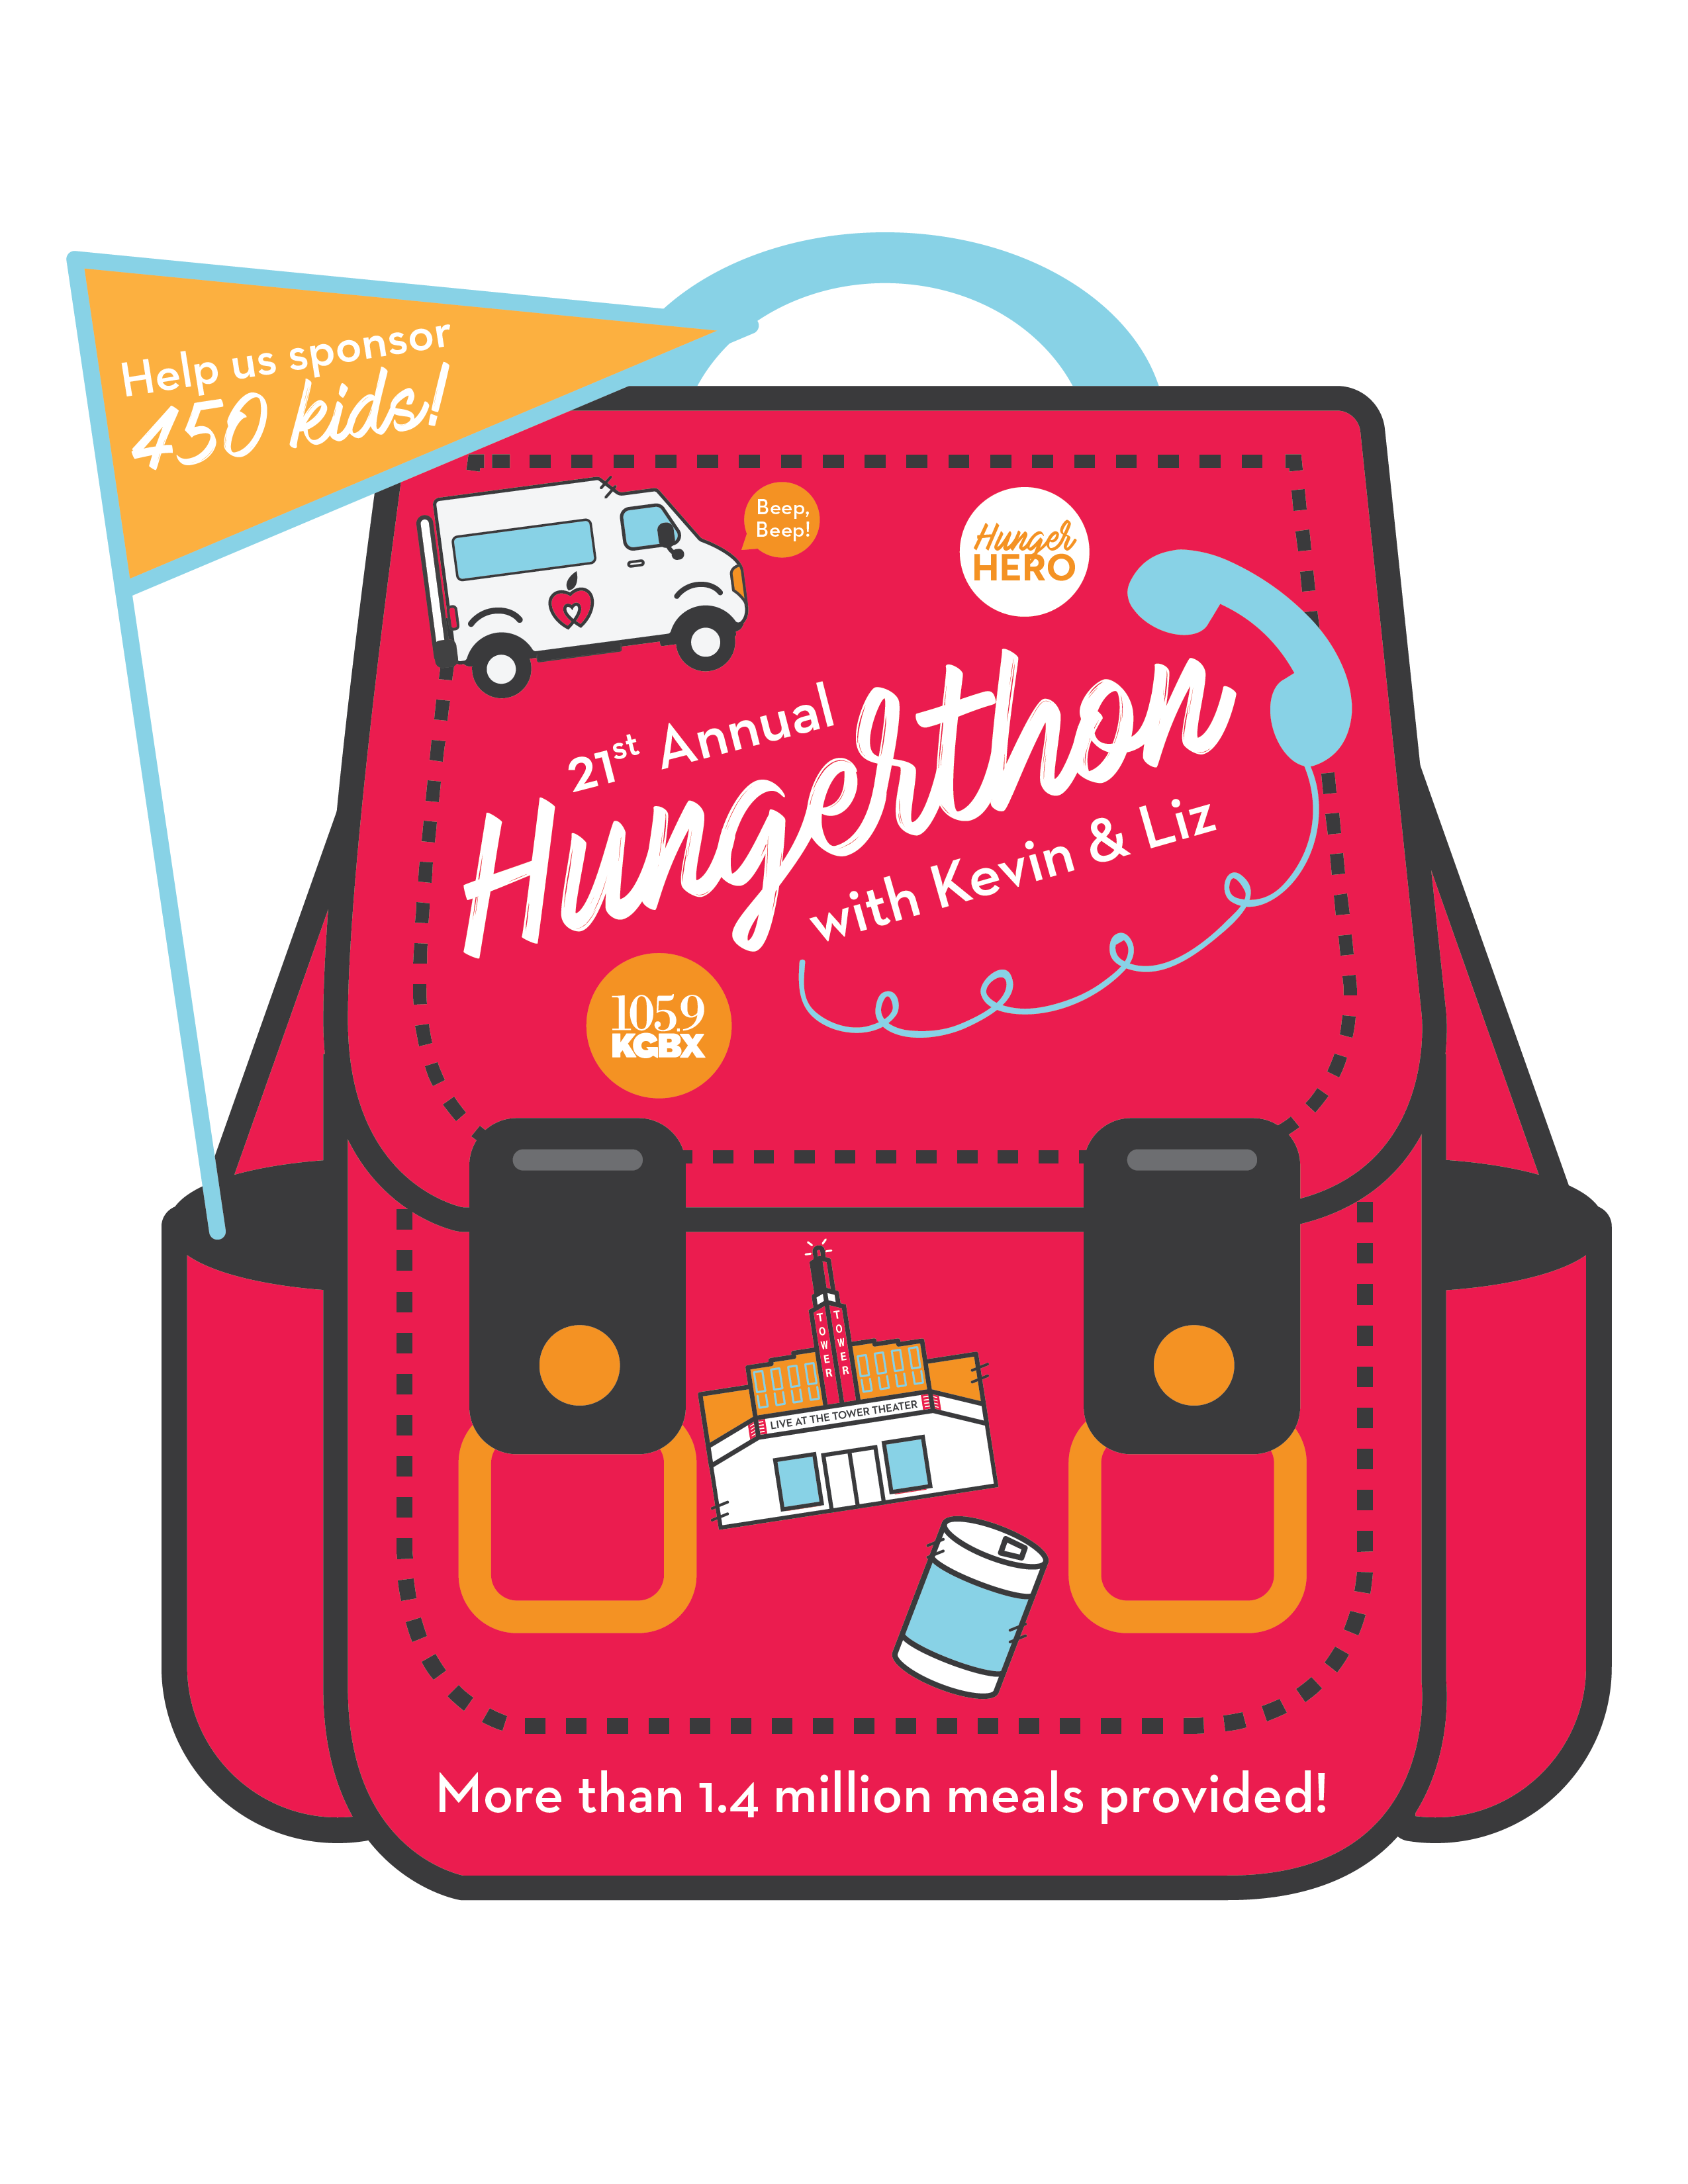 Annual Hungerthon in Springfield, MO.